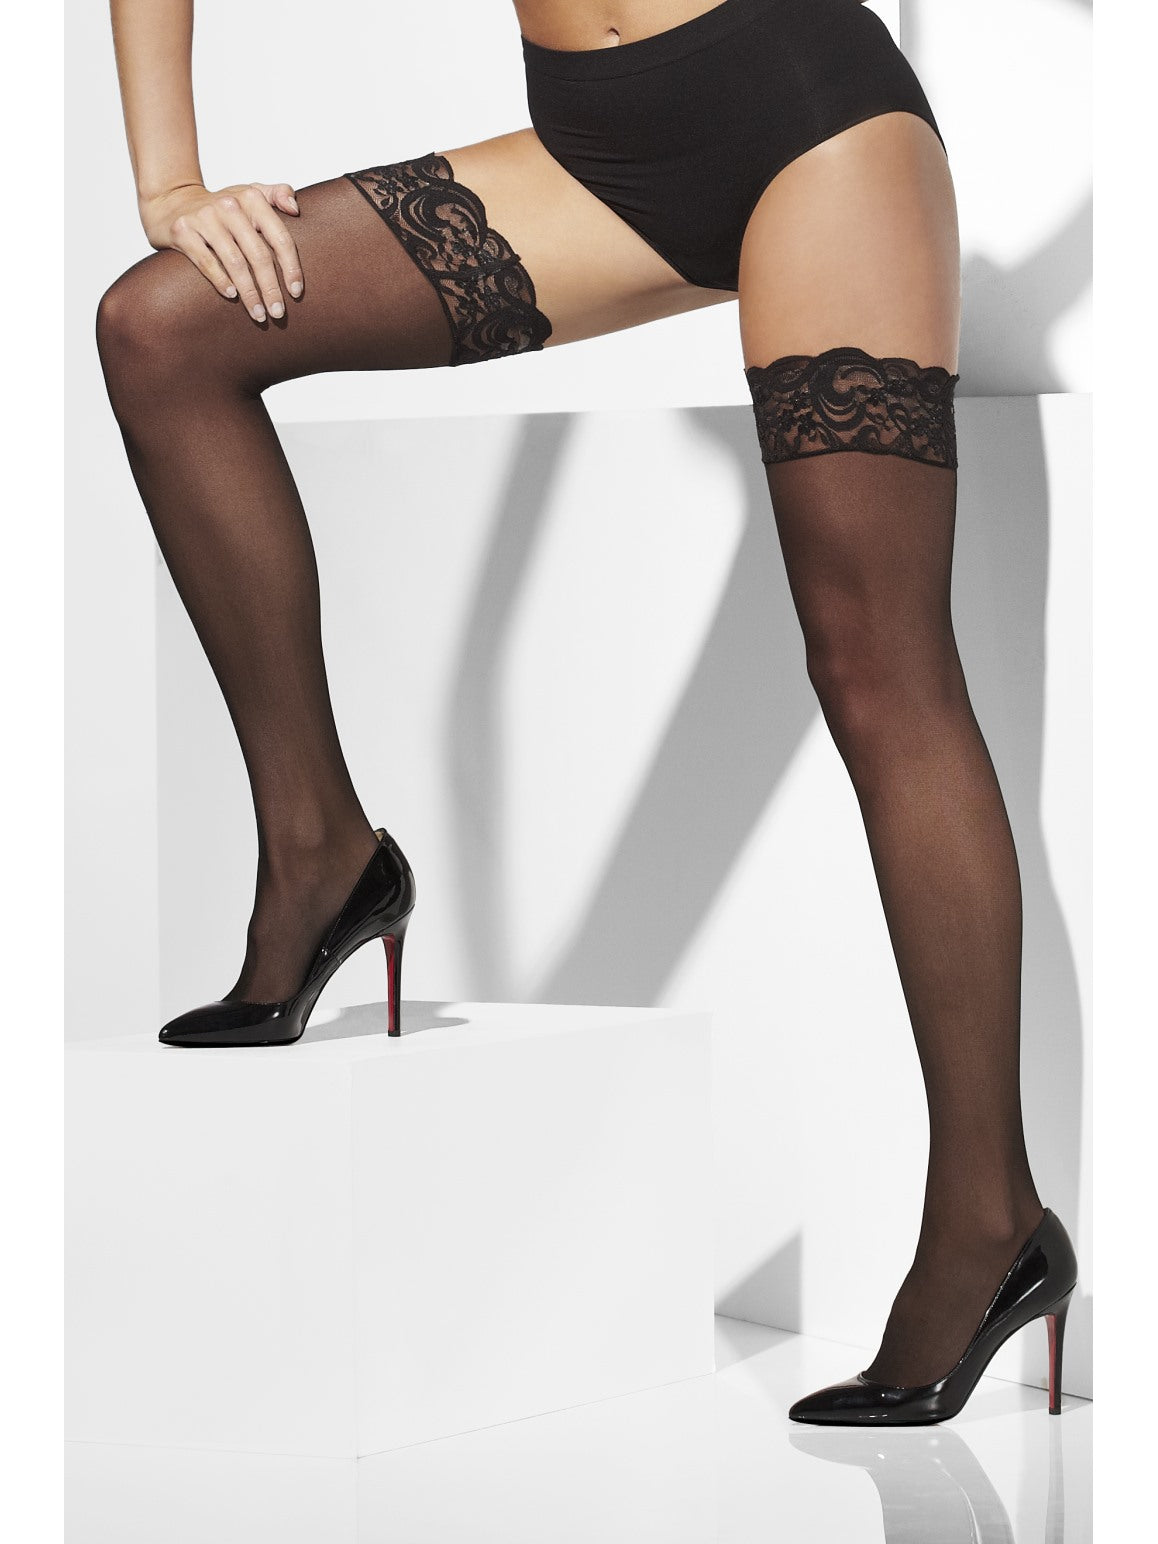 Black Lace Tops Sheer Hold-Ups - Party Savers